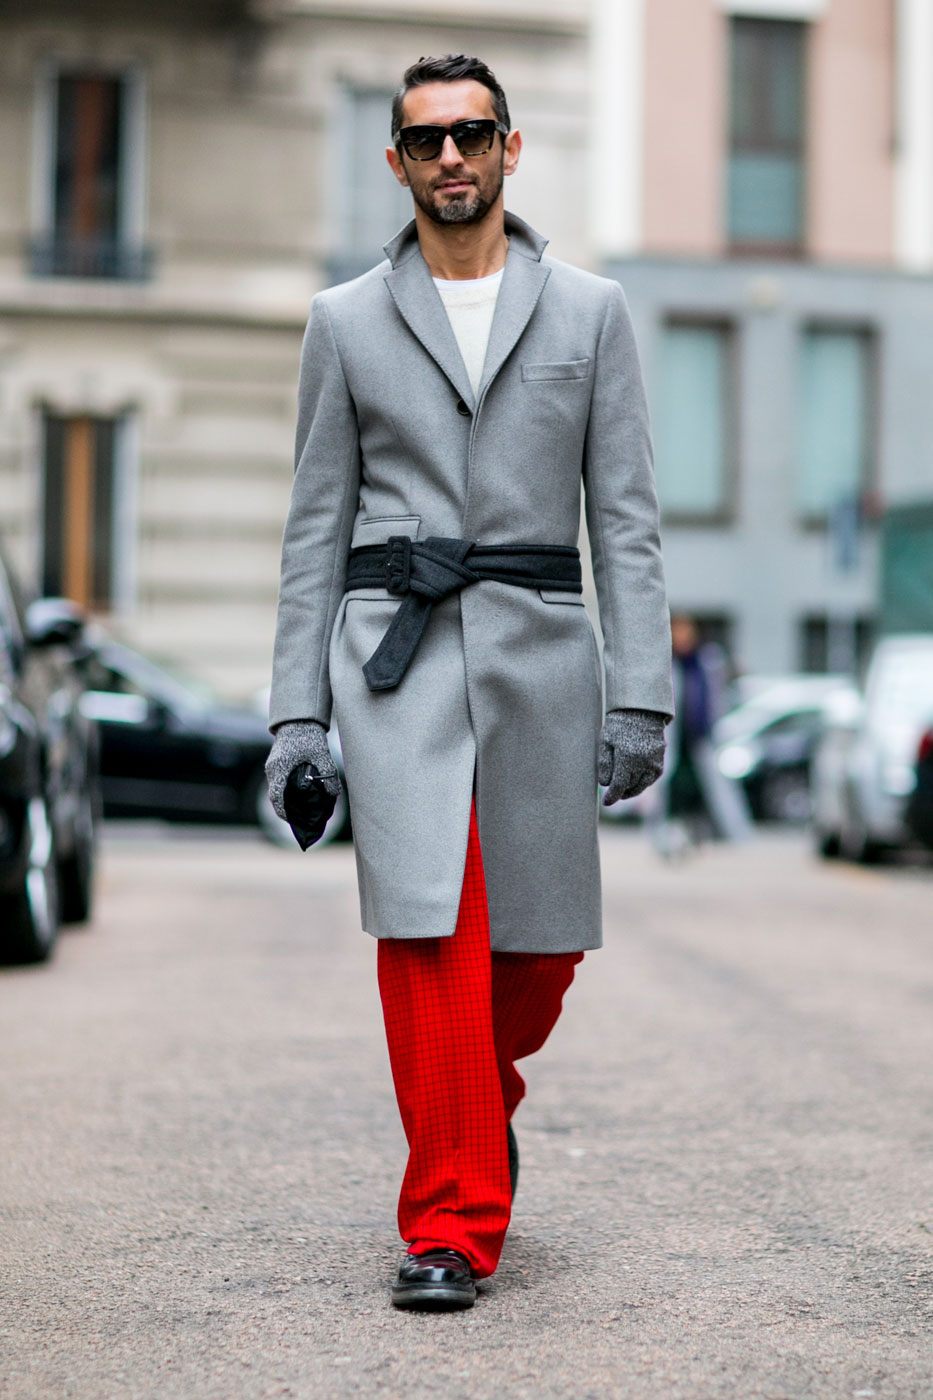 The Best Of Milan Fashion Week Street Style 2015 Day 3 The Impression